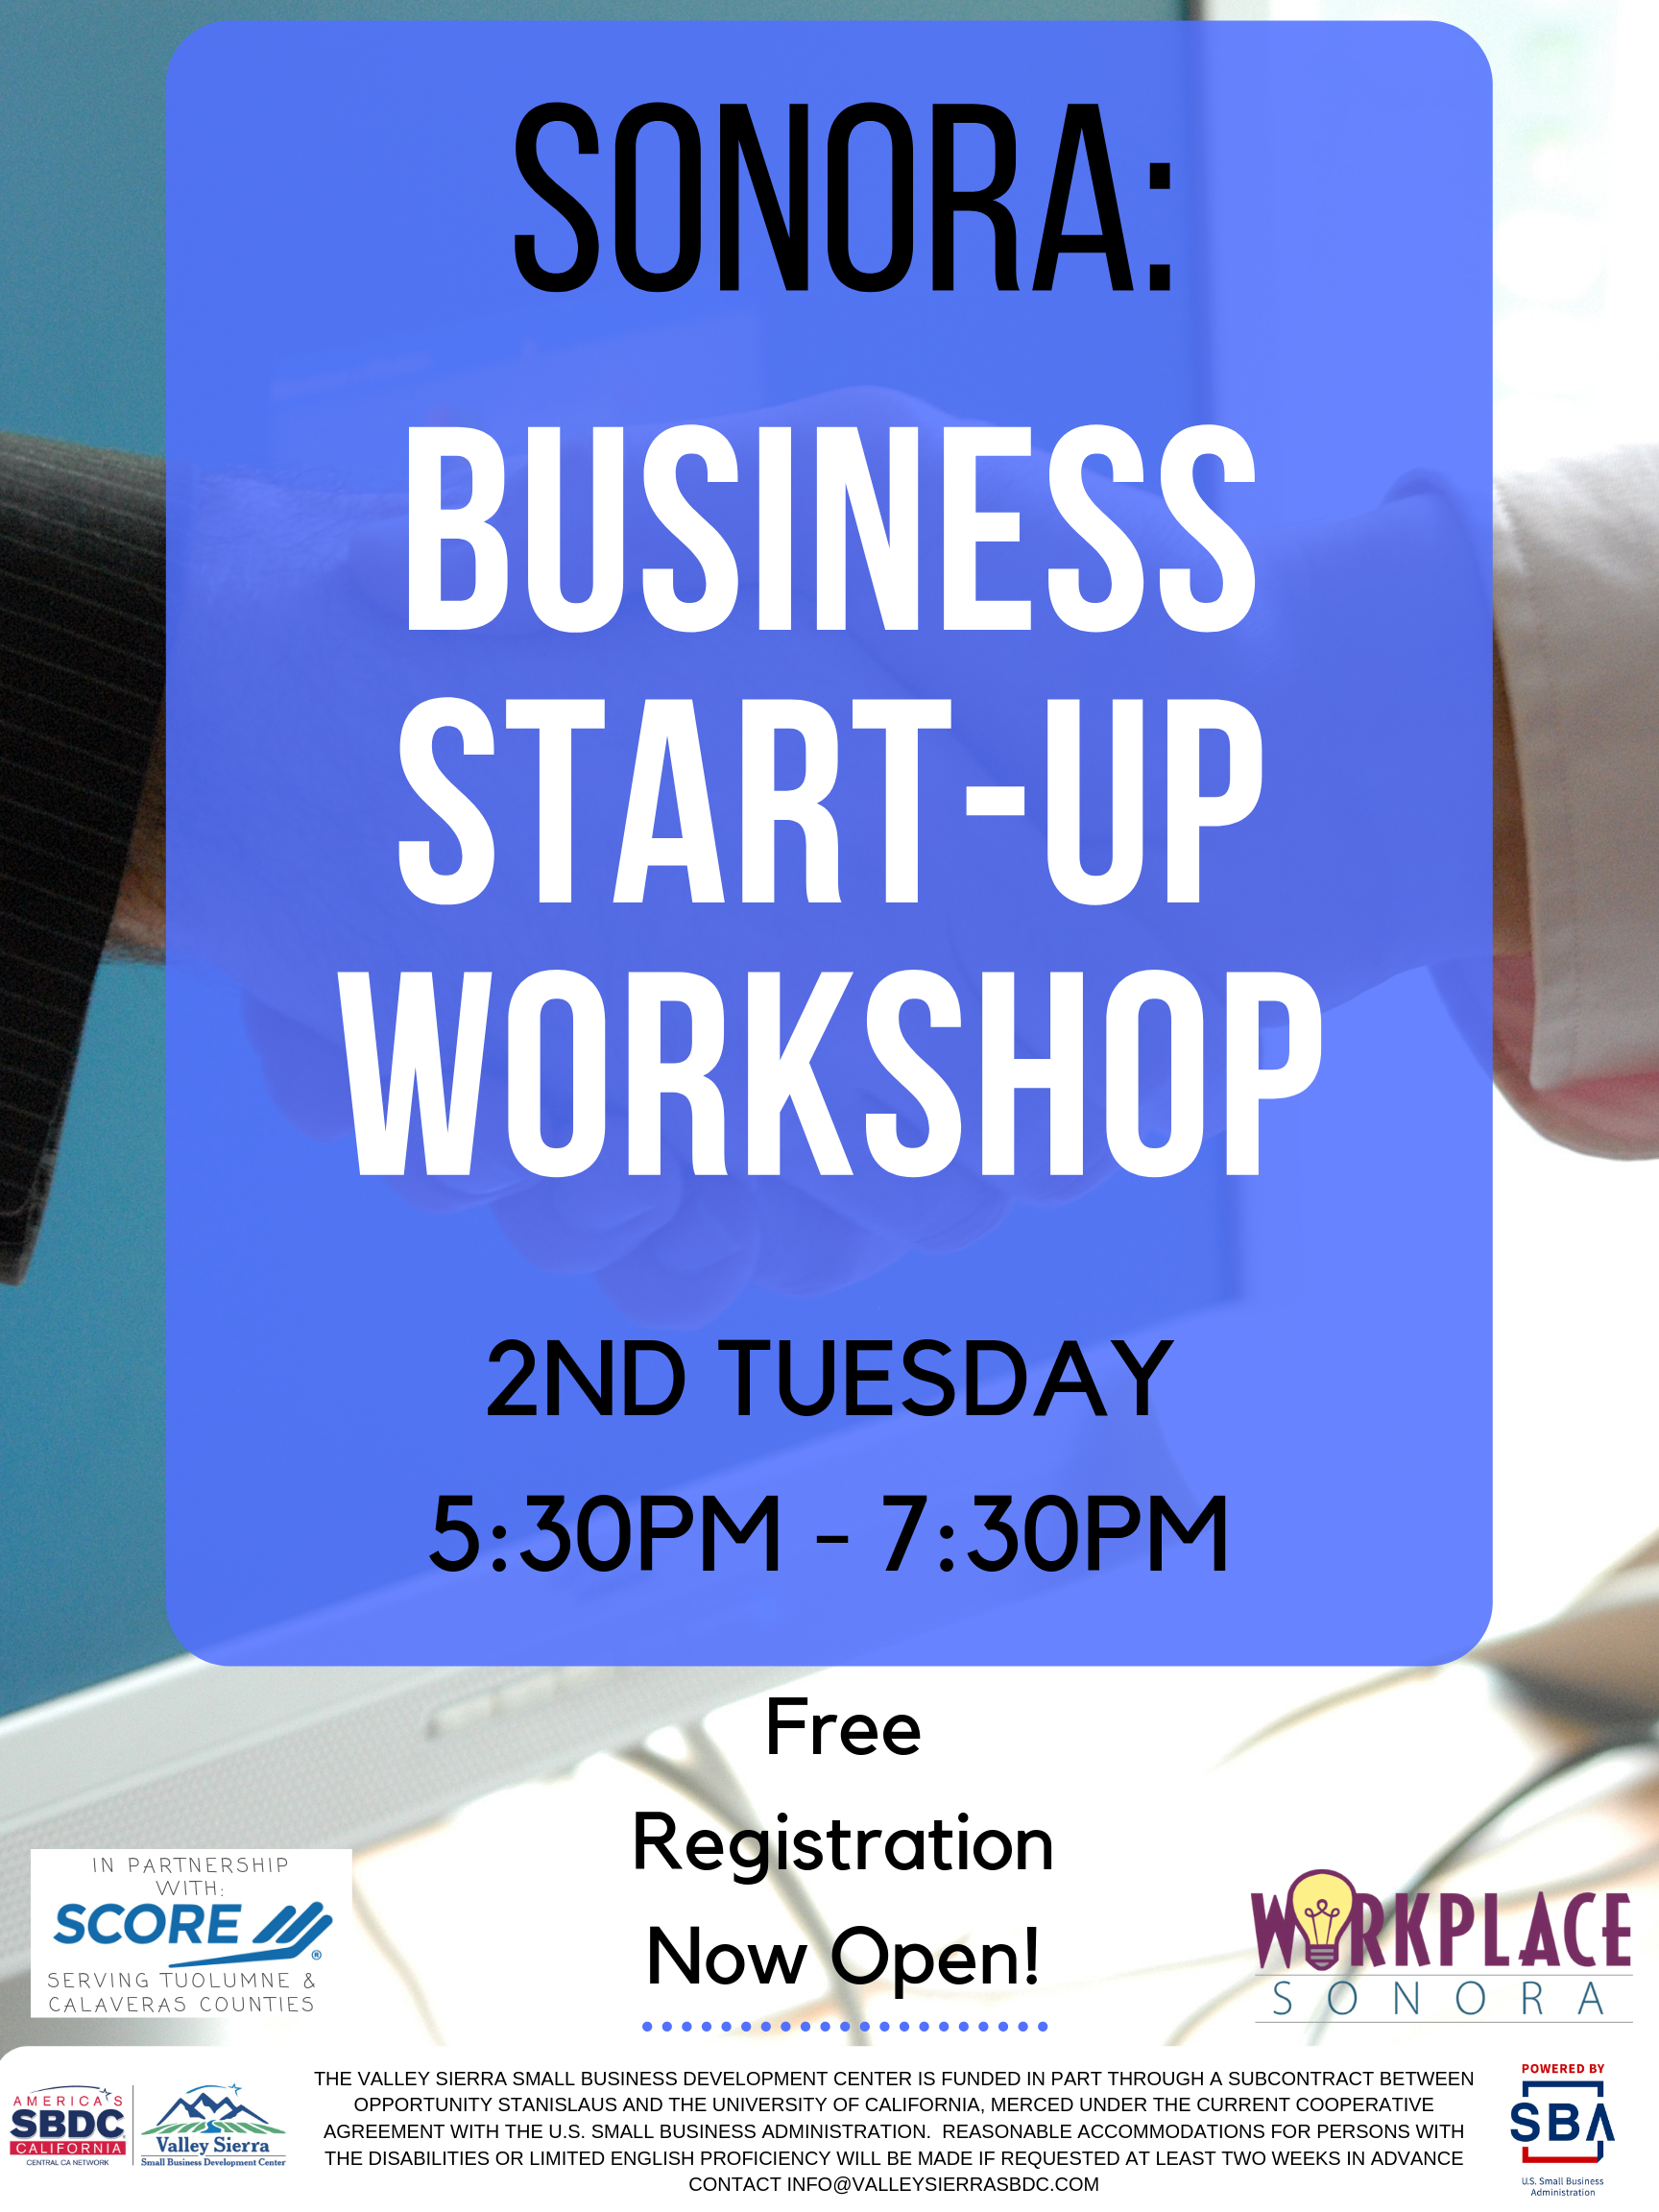 Event Flyer, Sonora: Business Start-Up Workshop, 2nd Tuesday, 5:30pm - 7:30pm. Free Registration Now Open! Tuesday, November 12th, 2019 at Workplace Sonora, 320 W. Stockton Street, Sonora, Ca.